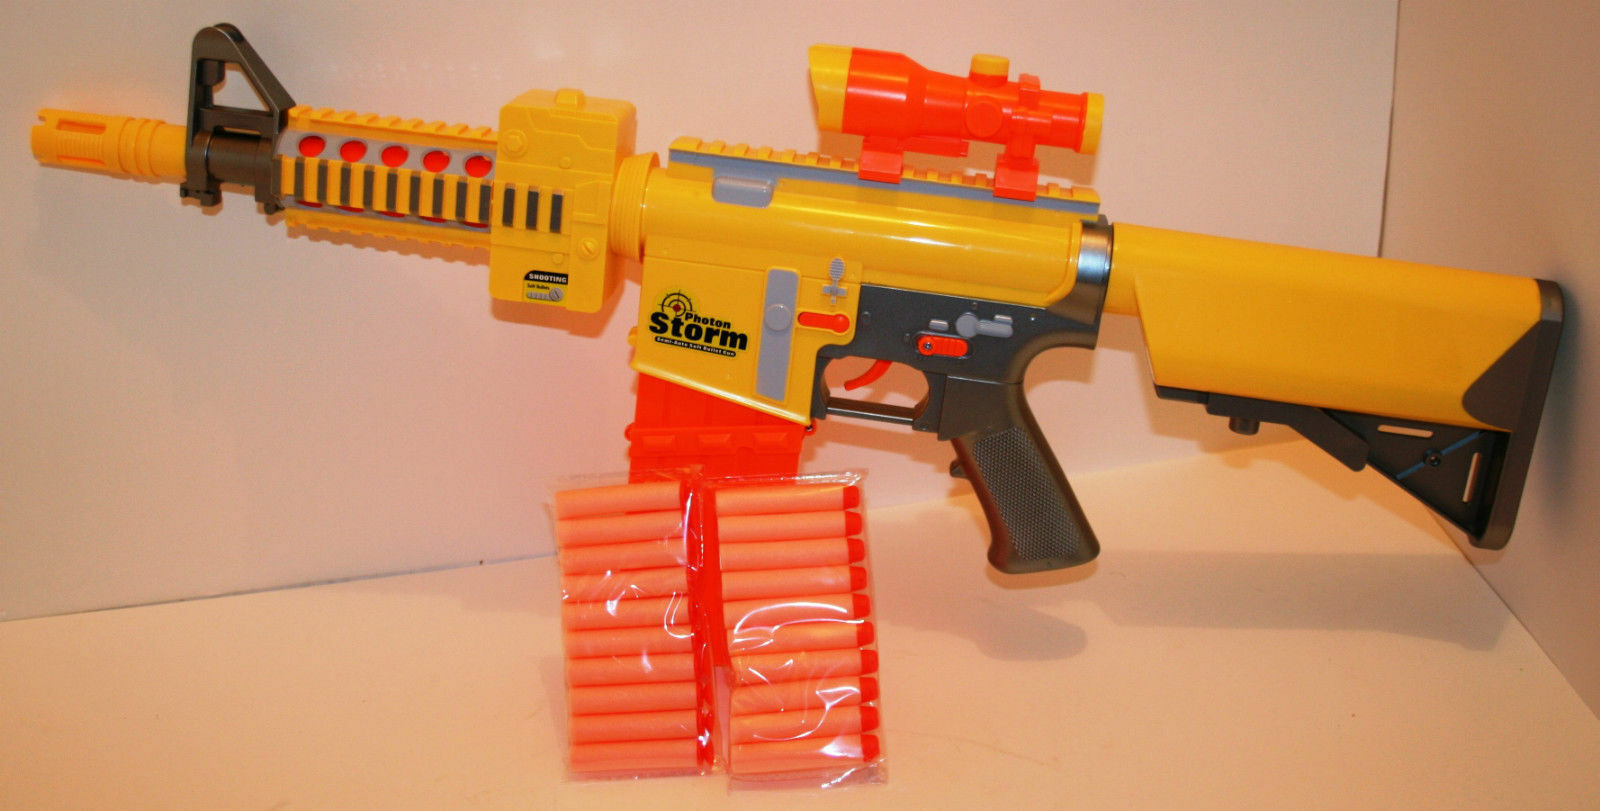 Nerf Style Photon Semi Auto Soft Bullet Electric Gun 6 1 Of 3only 2 Available